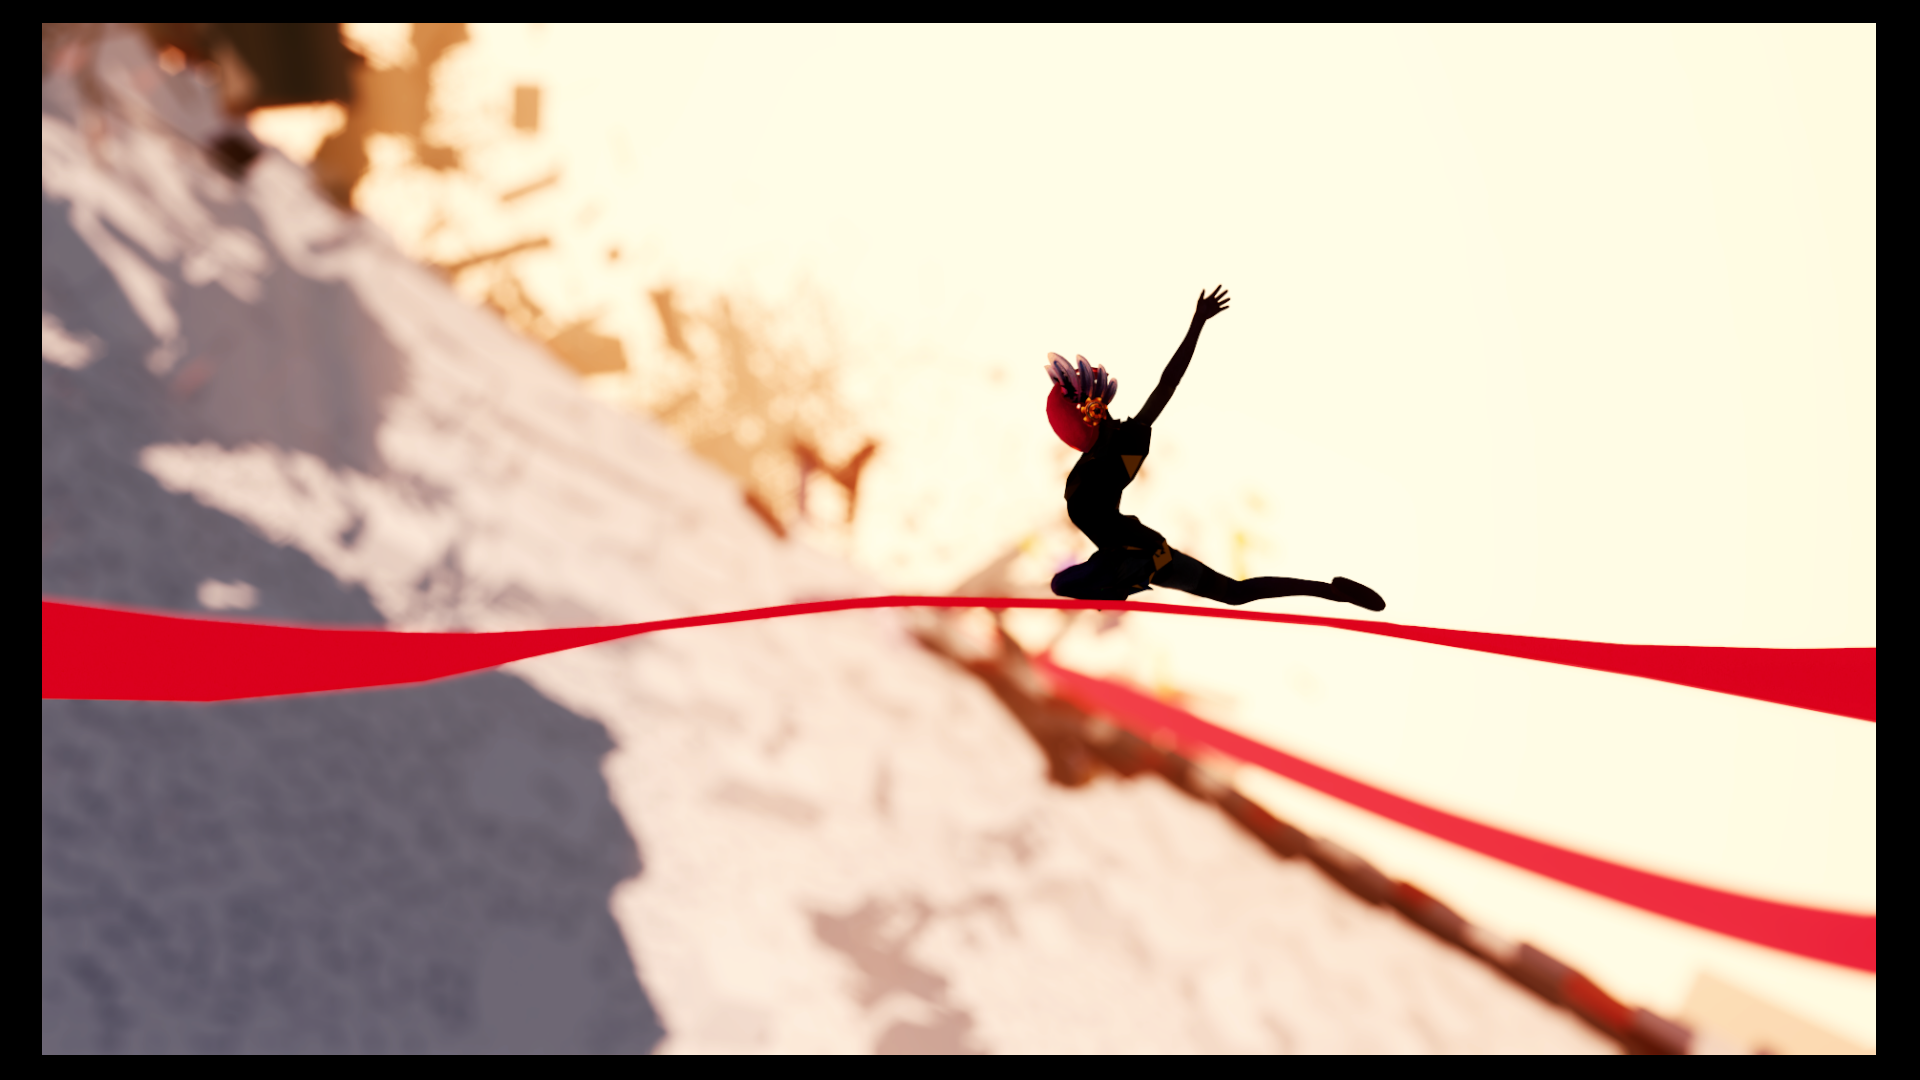 Bound_20160816224118.png